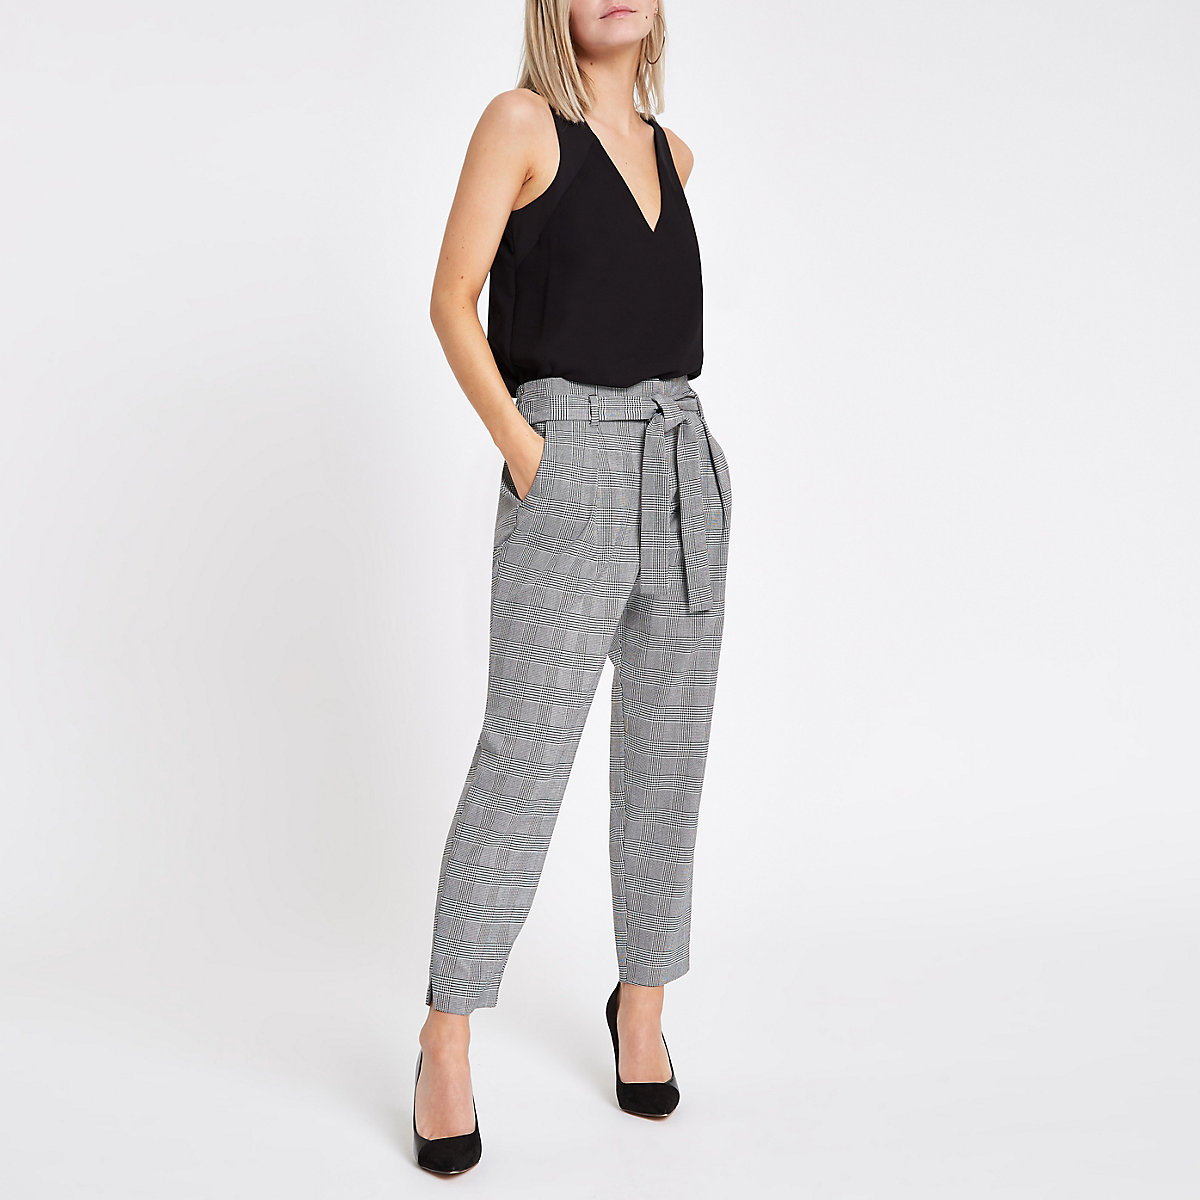 Petite black check tapered pants